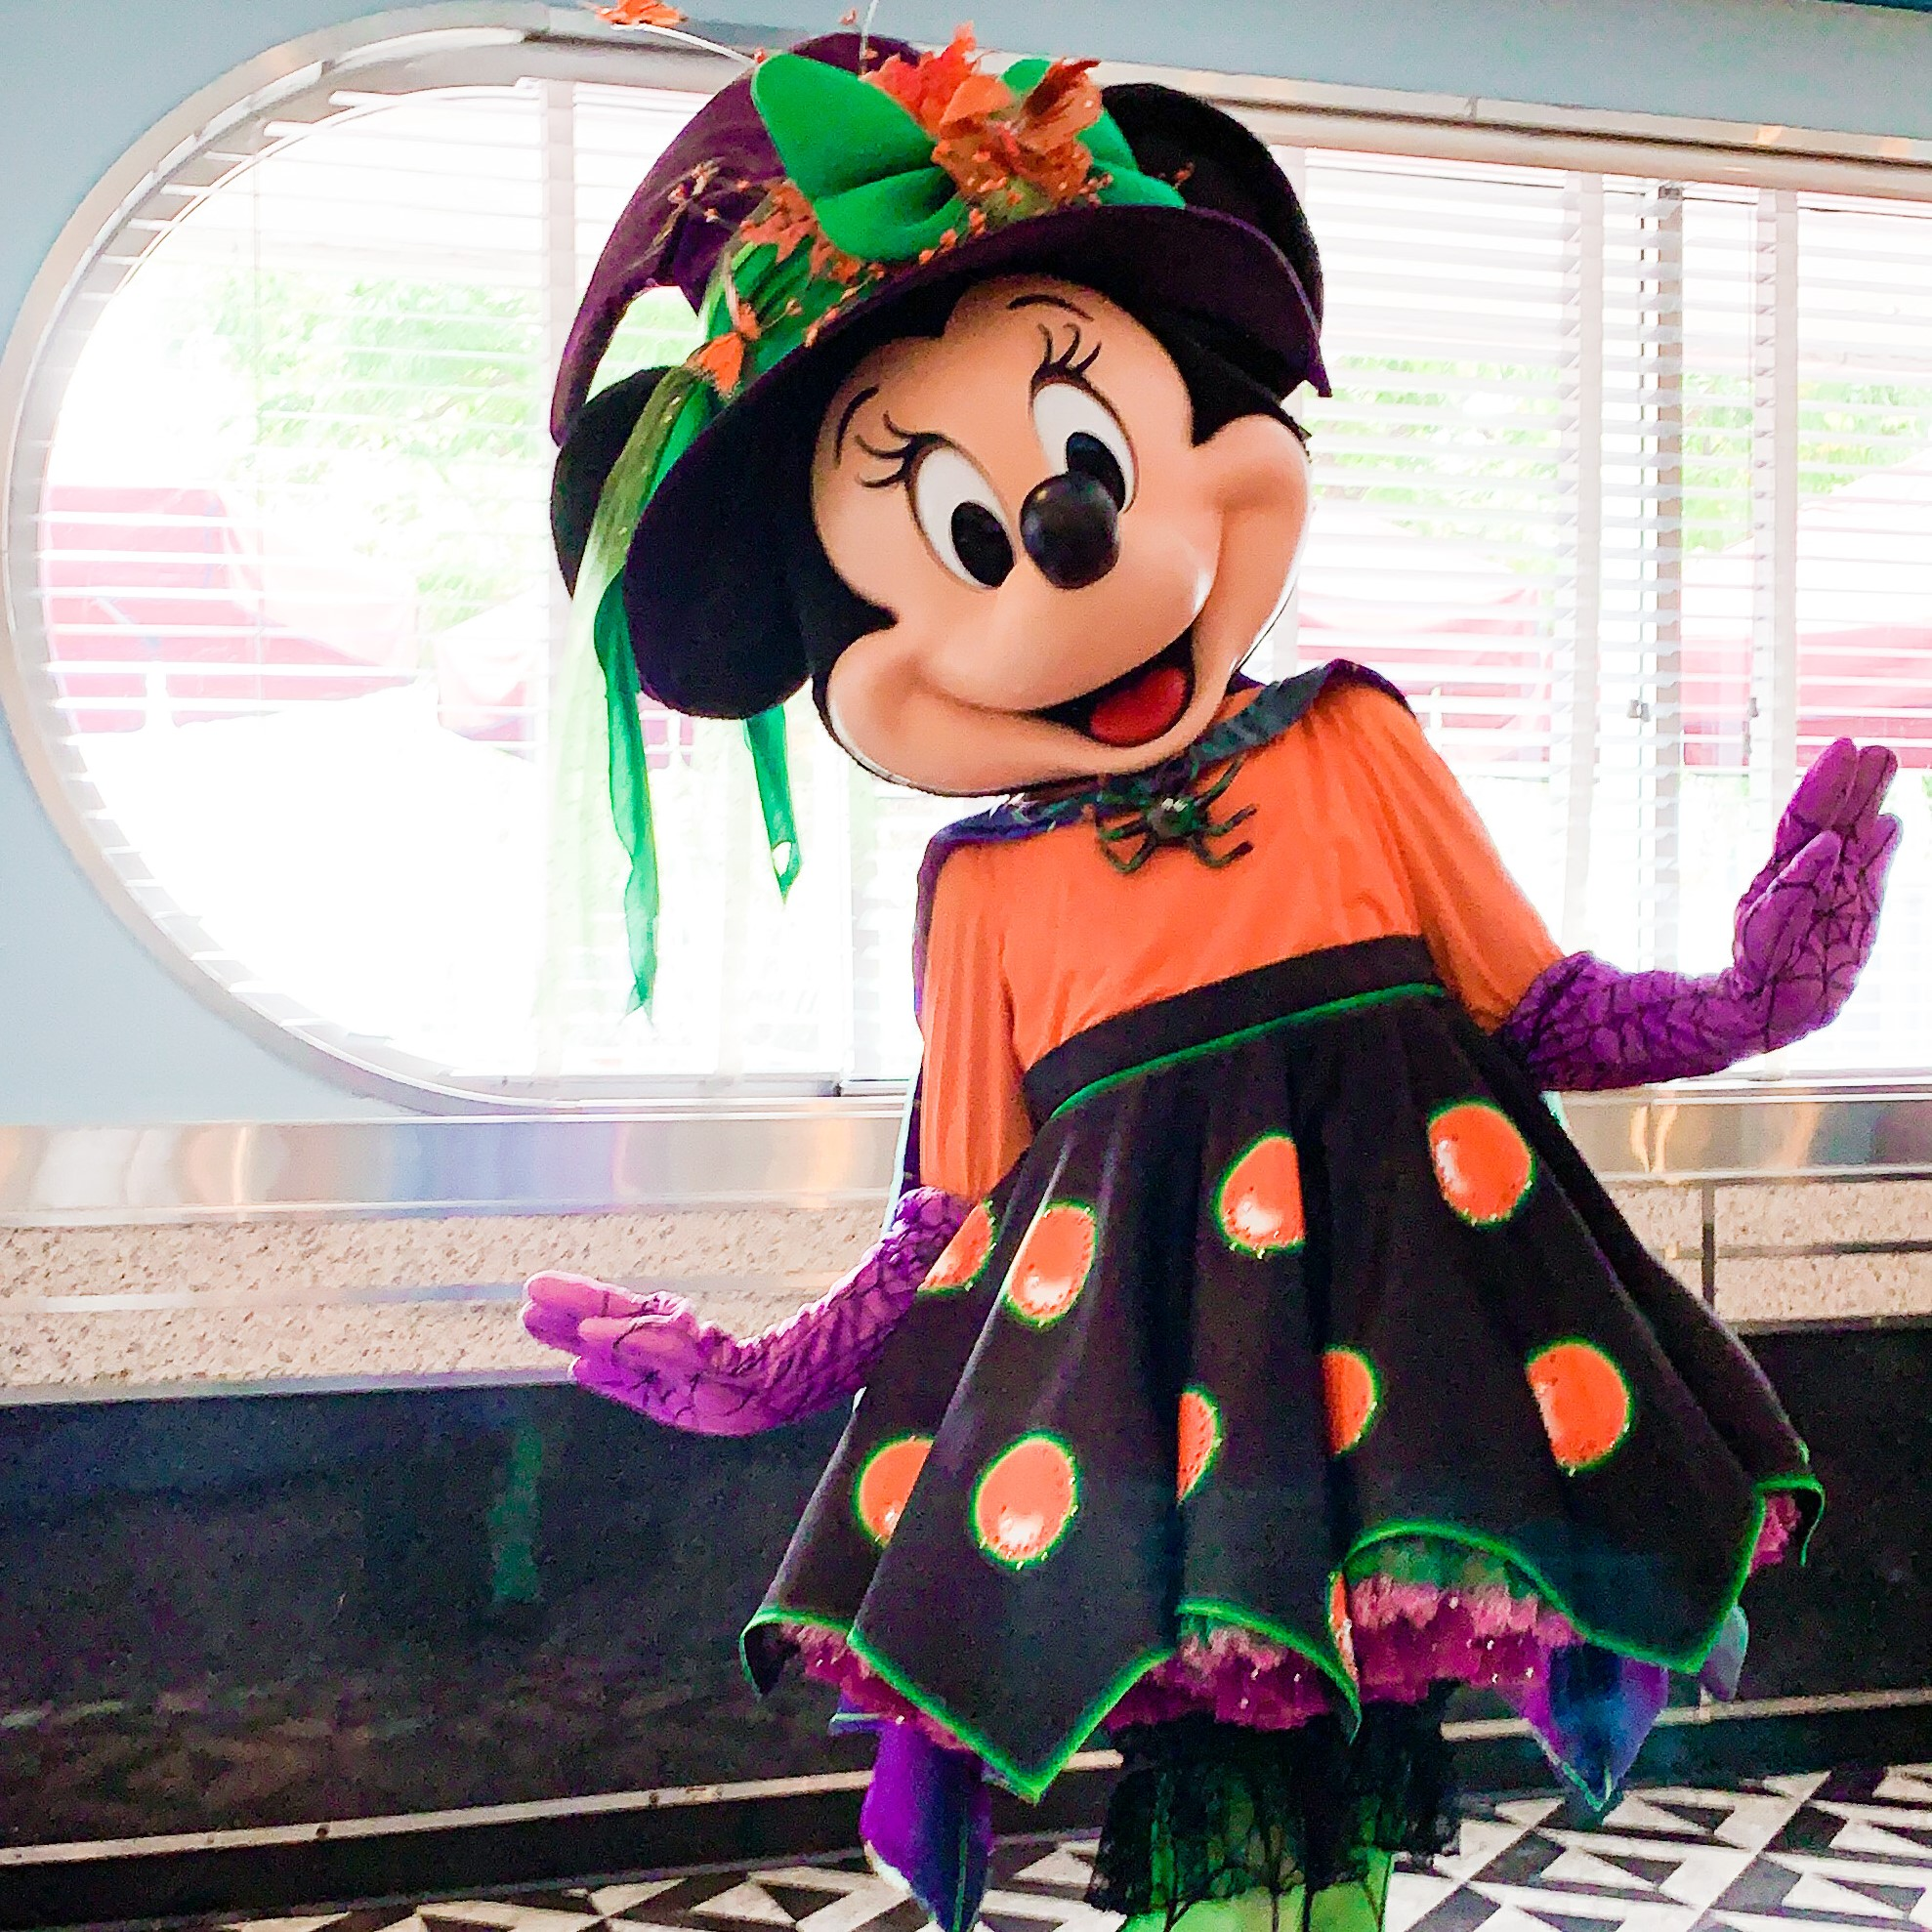 Hollywood & Vine At Disney's Hollywood Studios Is Back With Some Spooky Fun